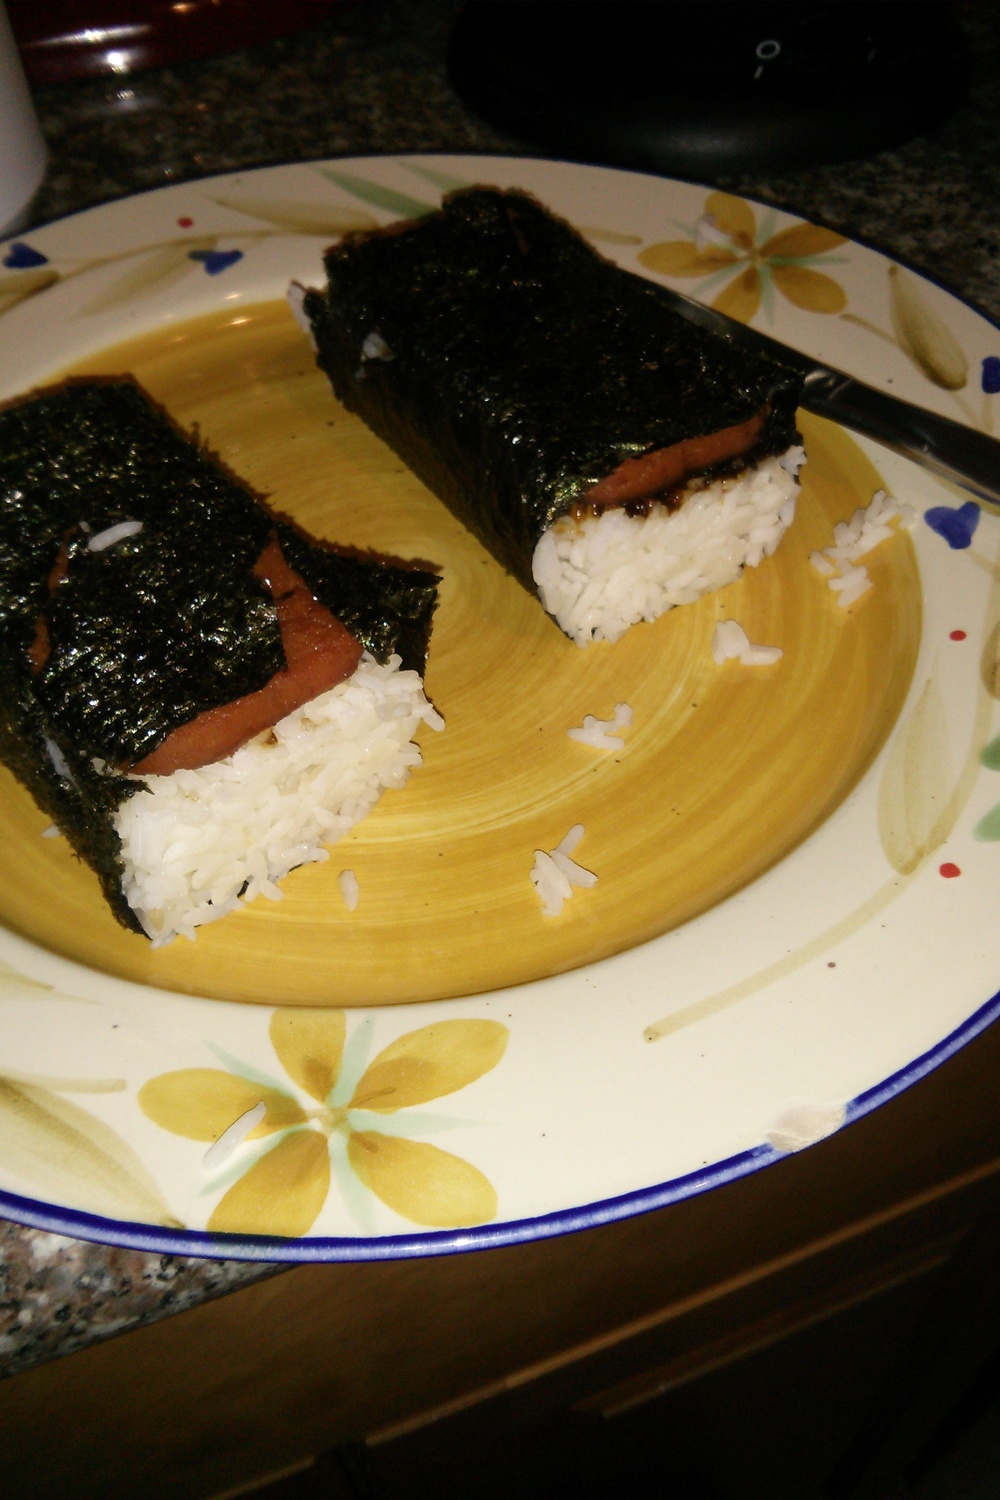 Made my own spam musubis